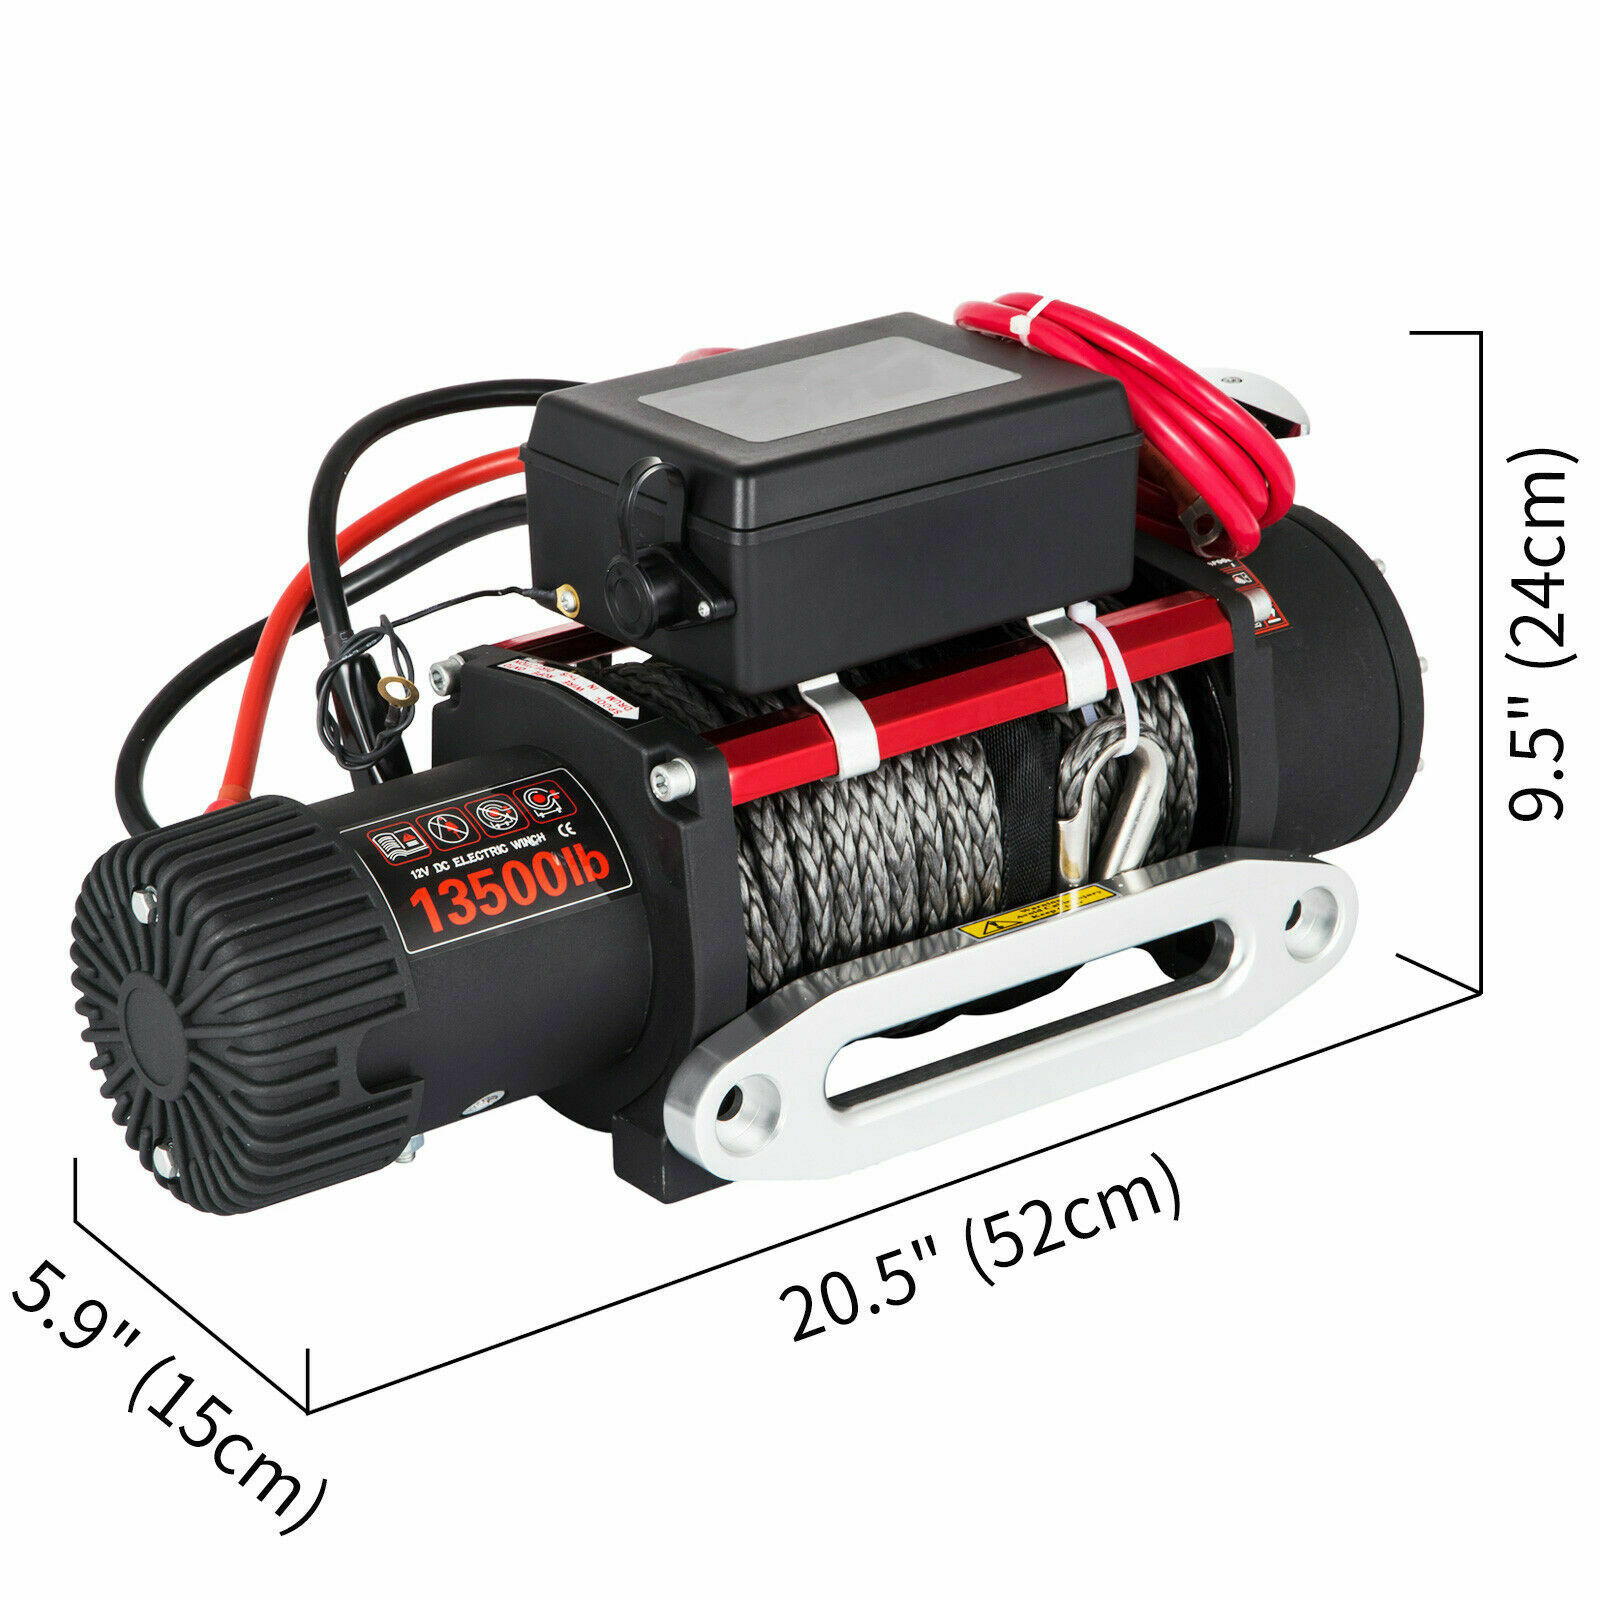 12V Electric Winch 27M Synthetic Rope 2 Wireless Control, for ATV SUV Boat Truck Trailer Recovery Off Road 13500LBS